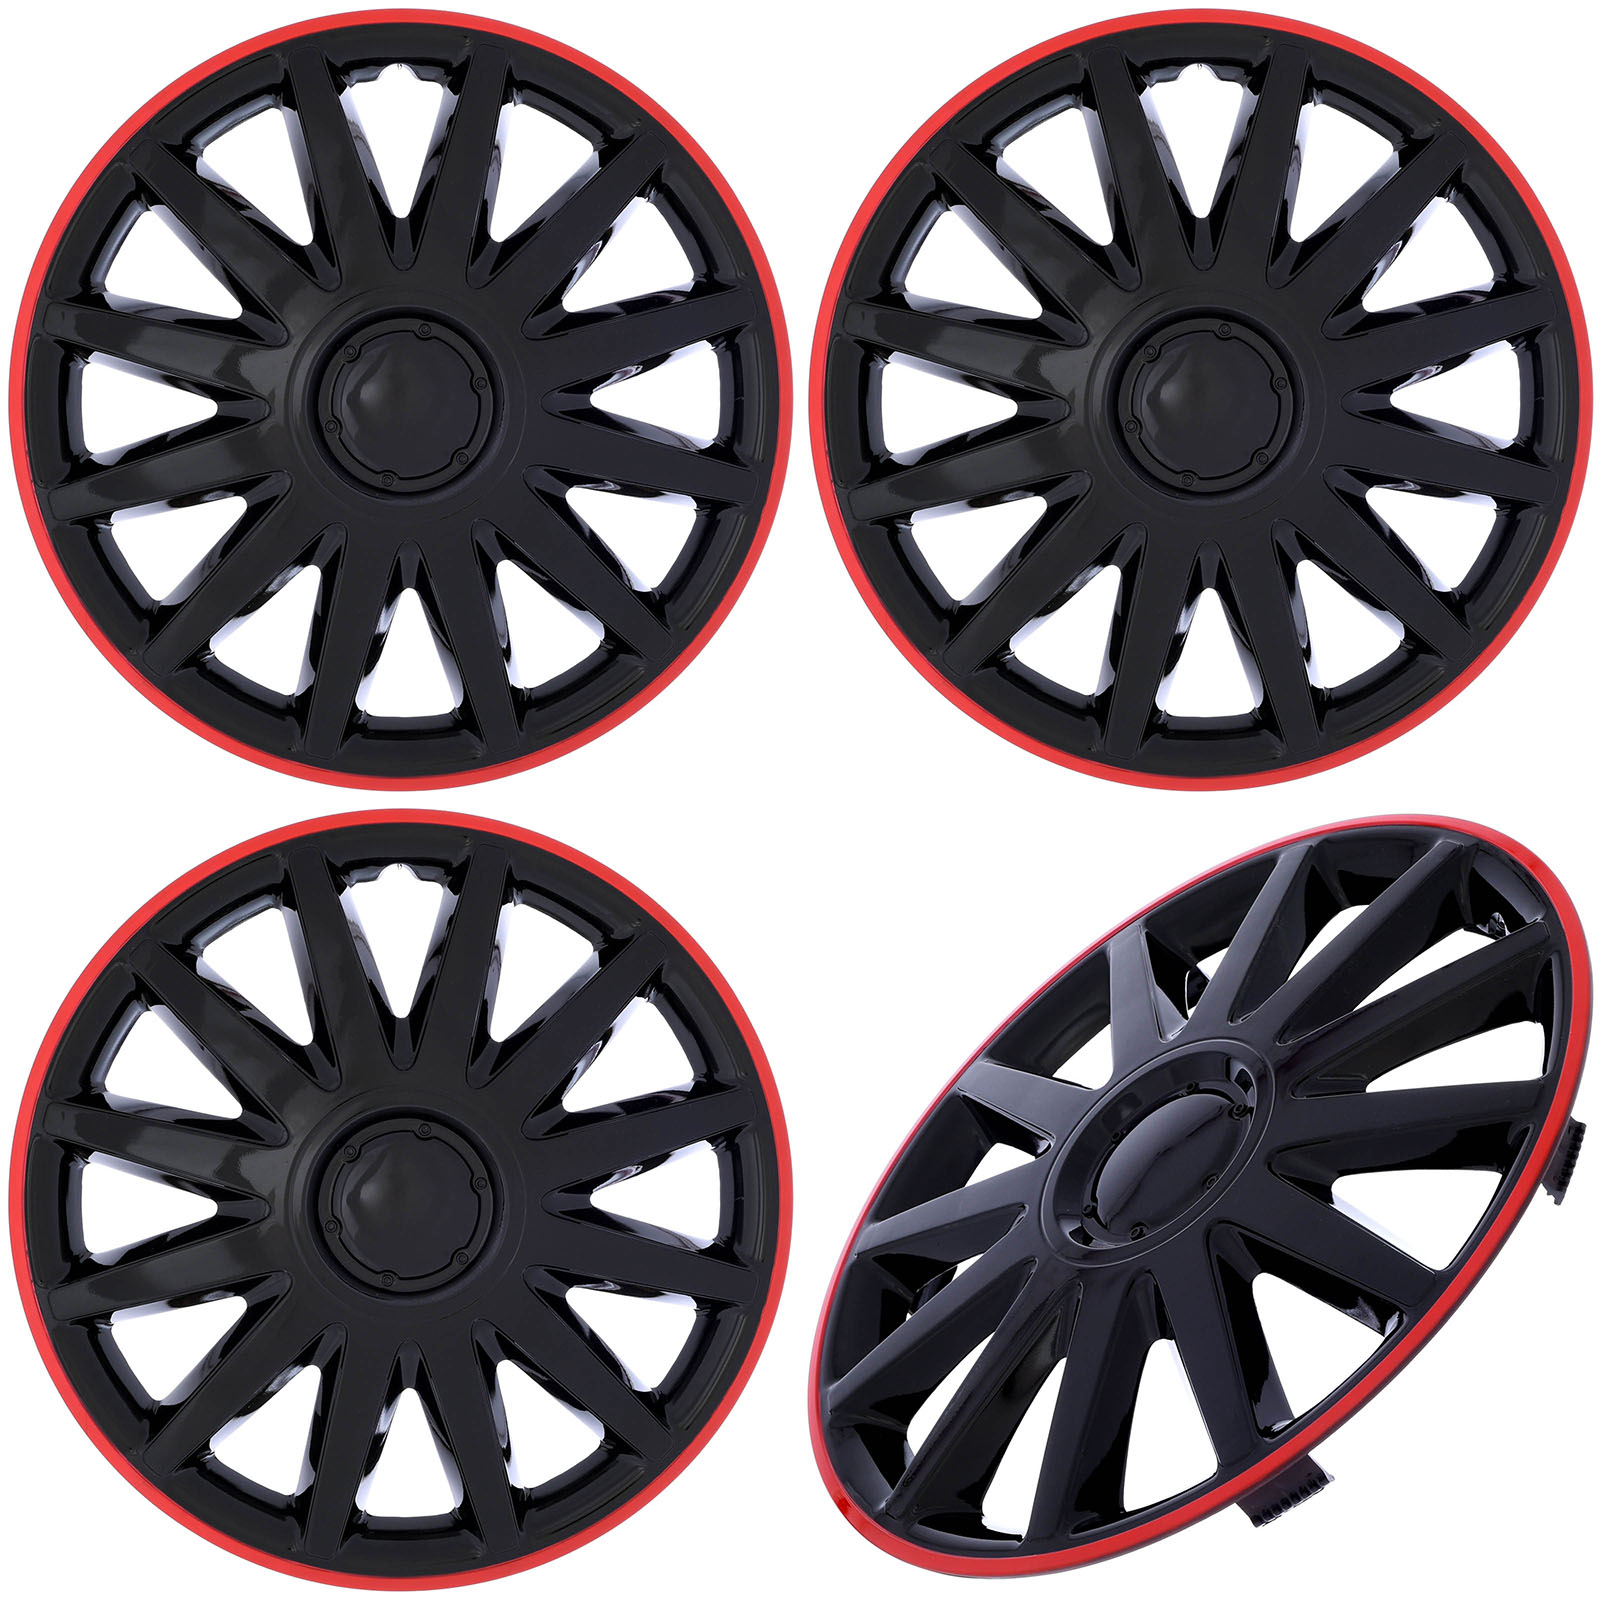 """Cover Trend (Set of 4), Aftermarket, 16"""" inch Shiny Black W/ Red Trim Hub Caps Wheel Covers"""